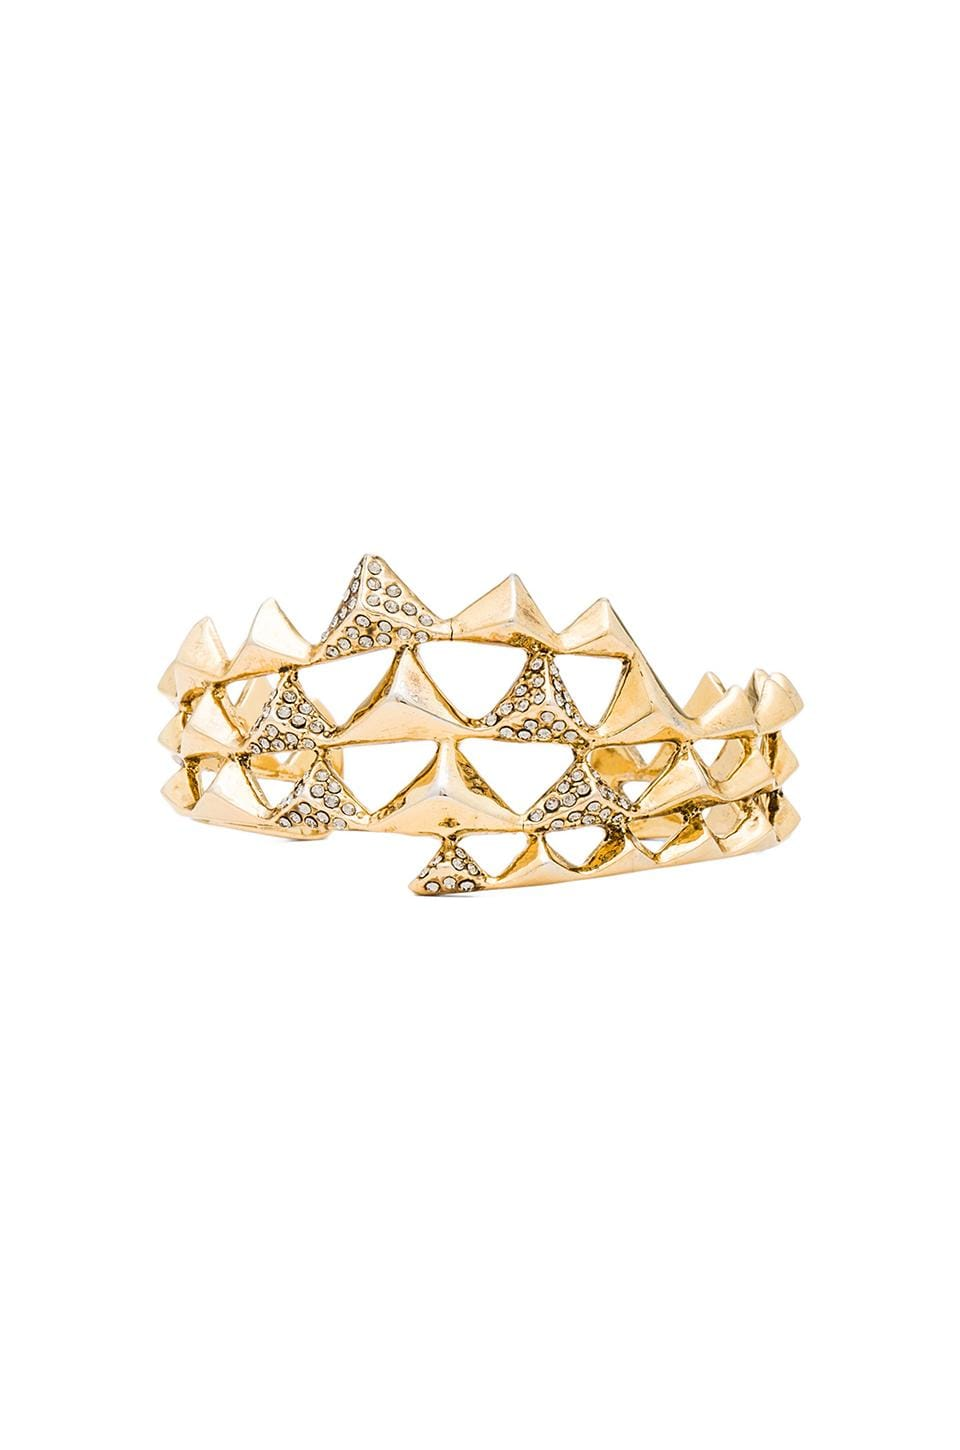 House of Harlow 1960 House of Harlow Pyramid Wave Pave Cuff in Gold